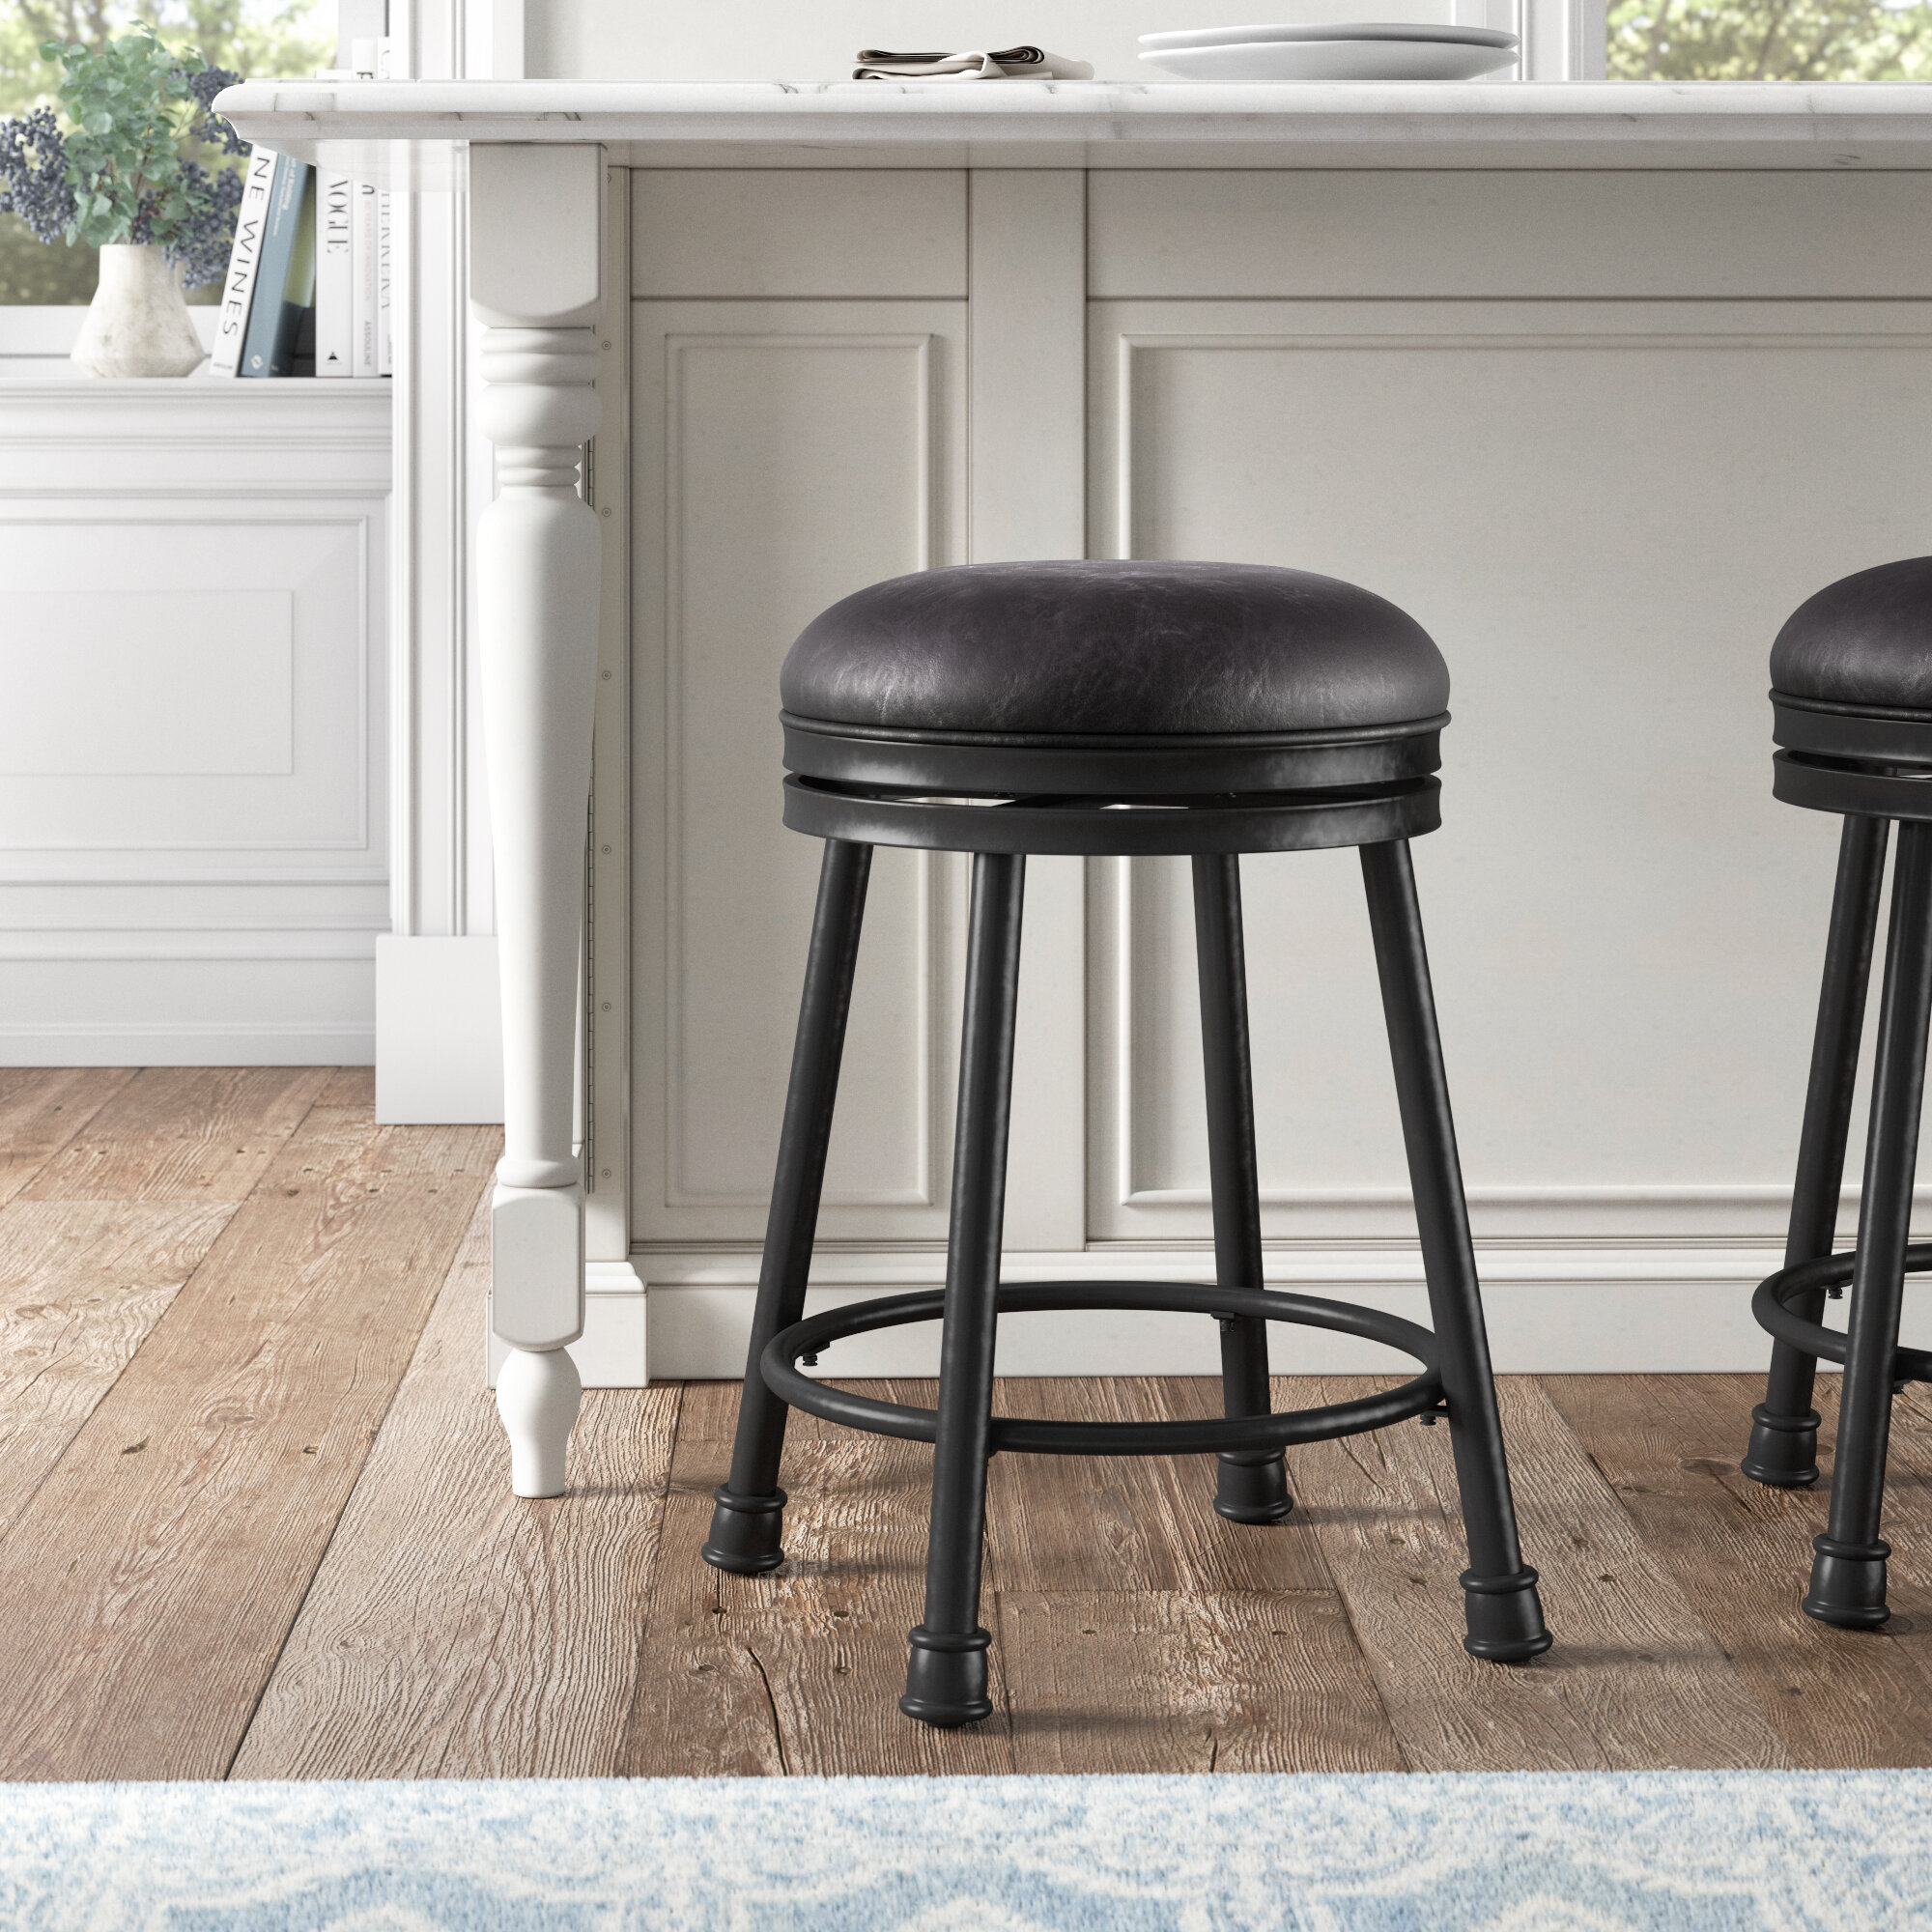 Kelly Clarkson Home Bar Stools Counter Stools You Ll Love In 2021 Wayfair